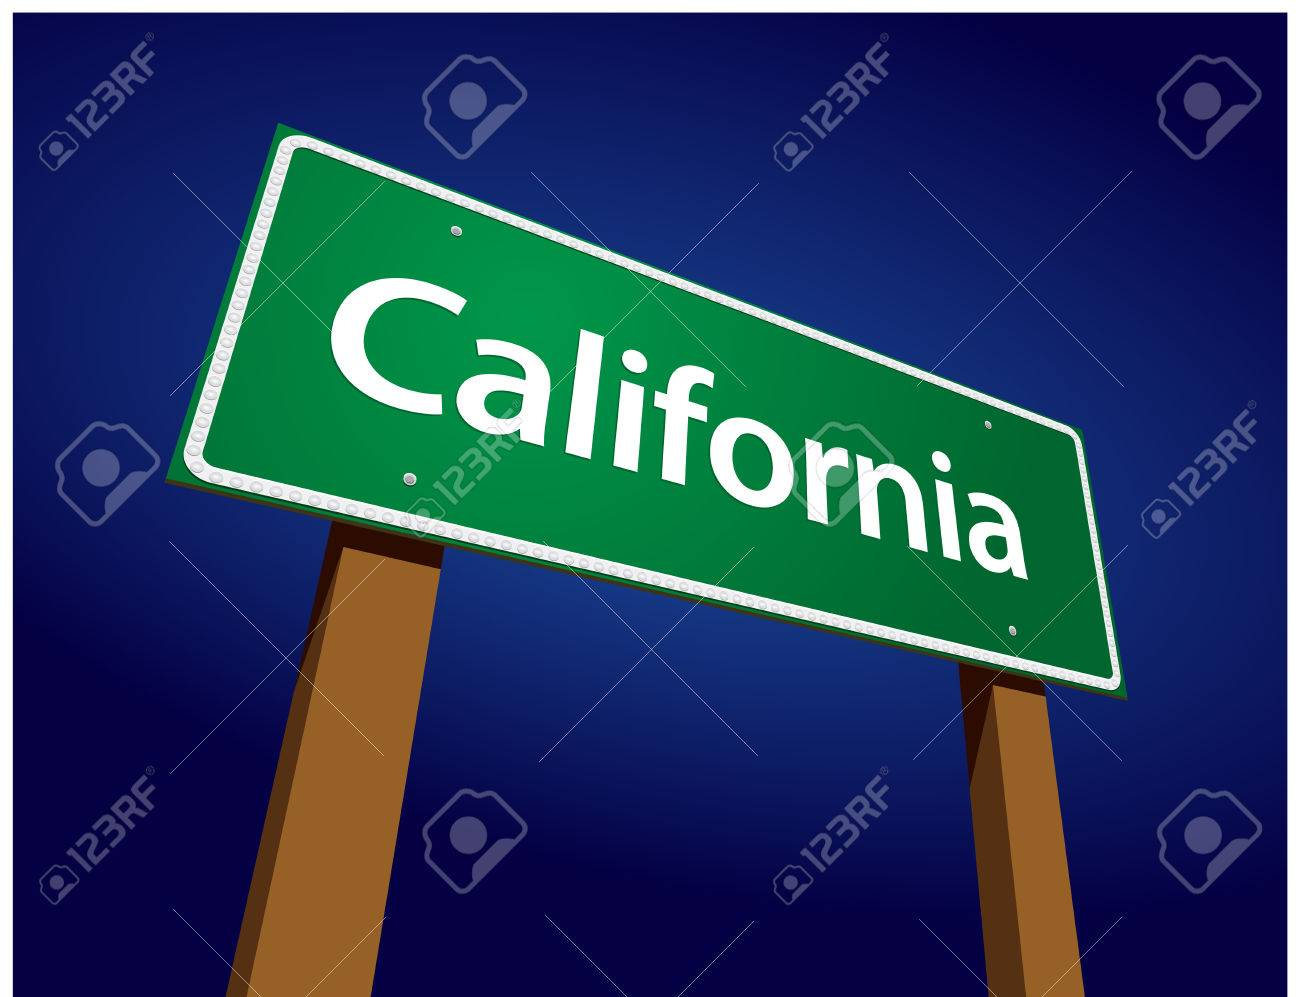 California Green Road Sign Illustration on a Radiant Blue Background. Stock Vector - 5288883